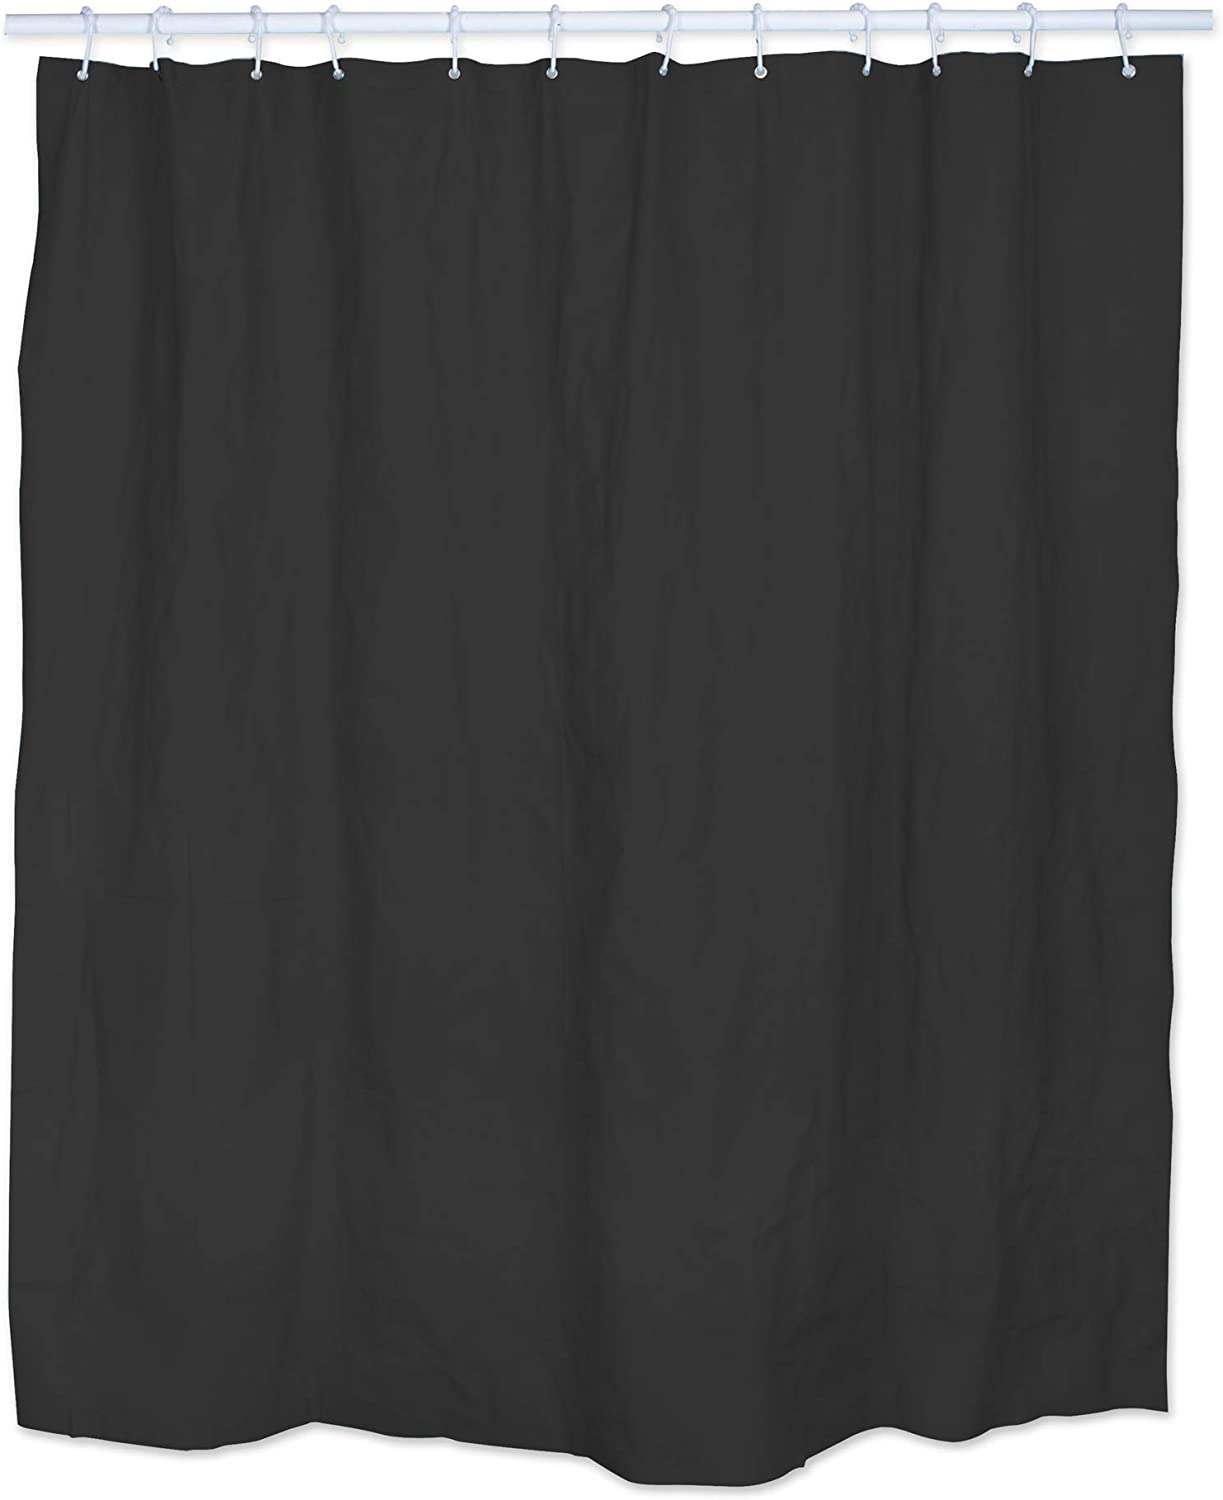 J & M Home Fashions Antibacterial and Mildew Resistant Shower Curtain, Liner, Black, Shower Curtain Liner